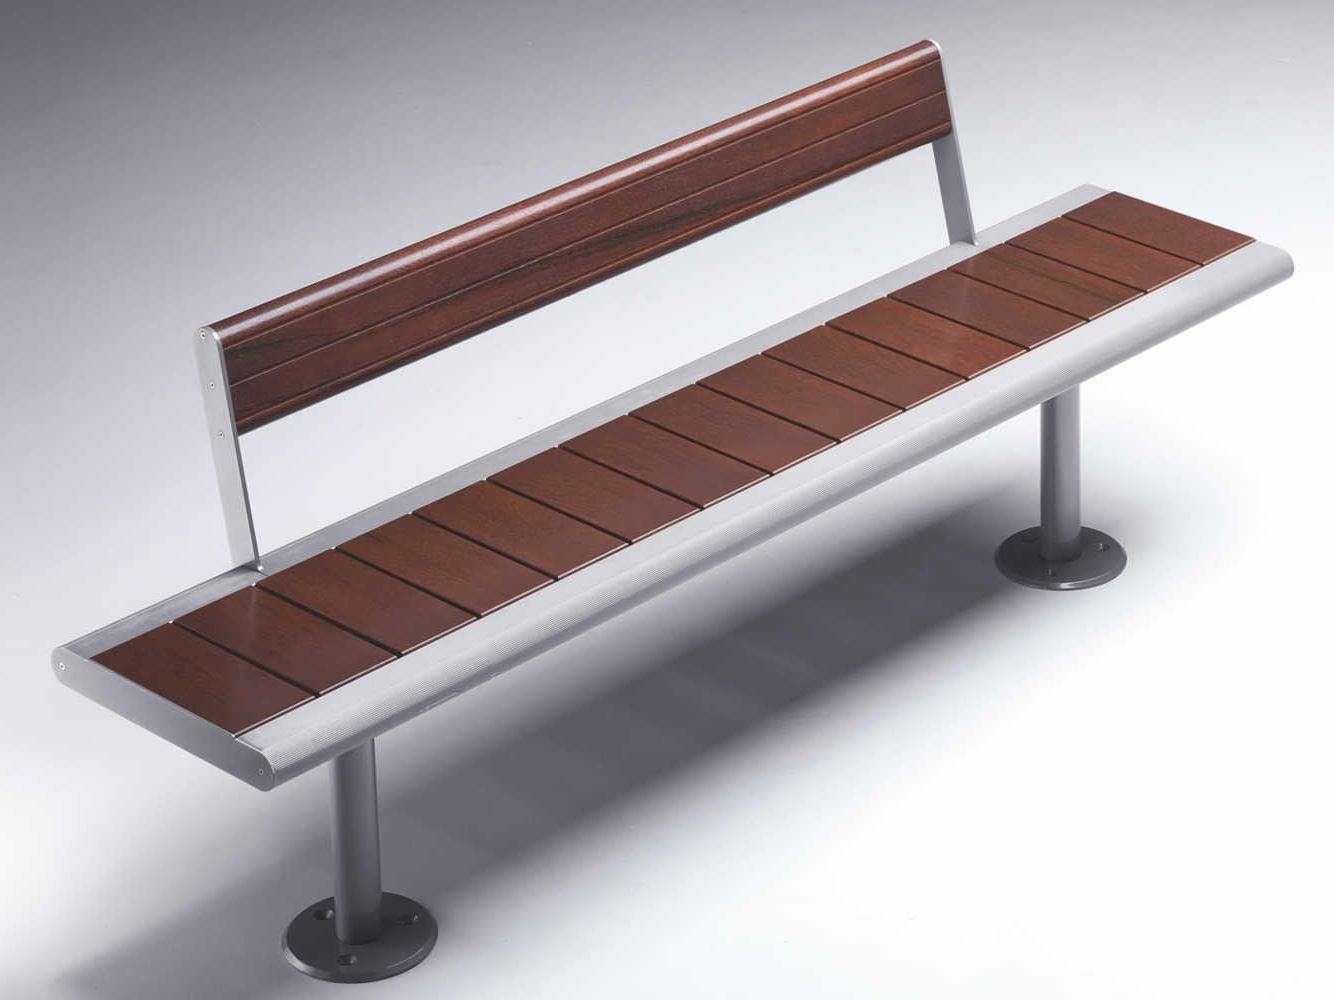 Contemporary Style Stainless Steel Bench With Back Gea By Metalco Design Staubach Kuckertz